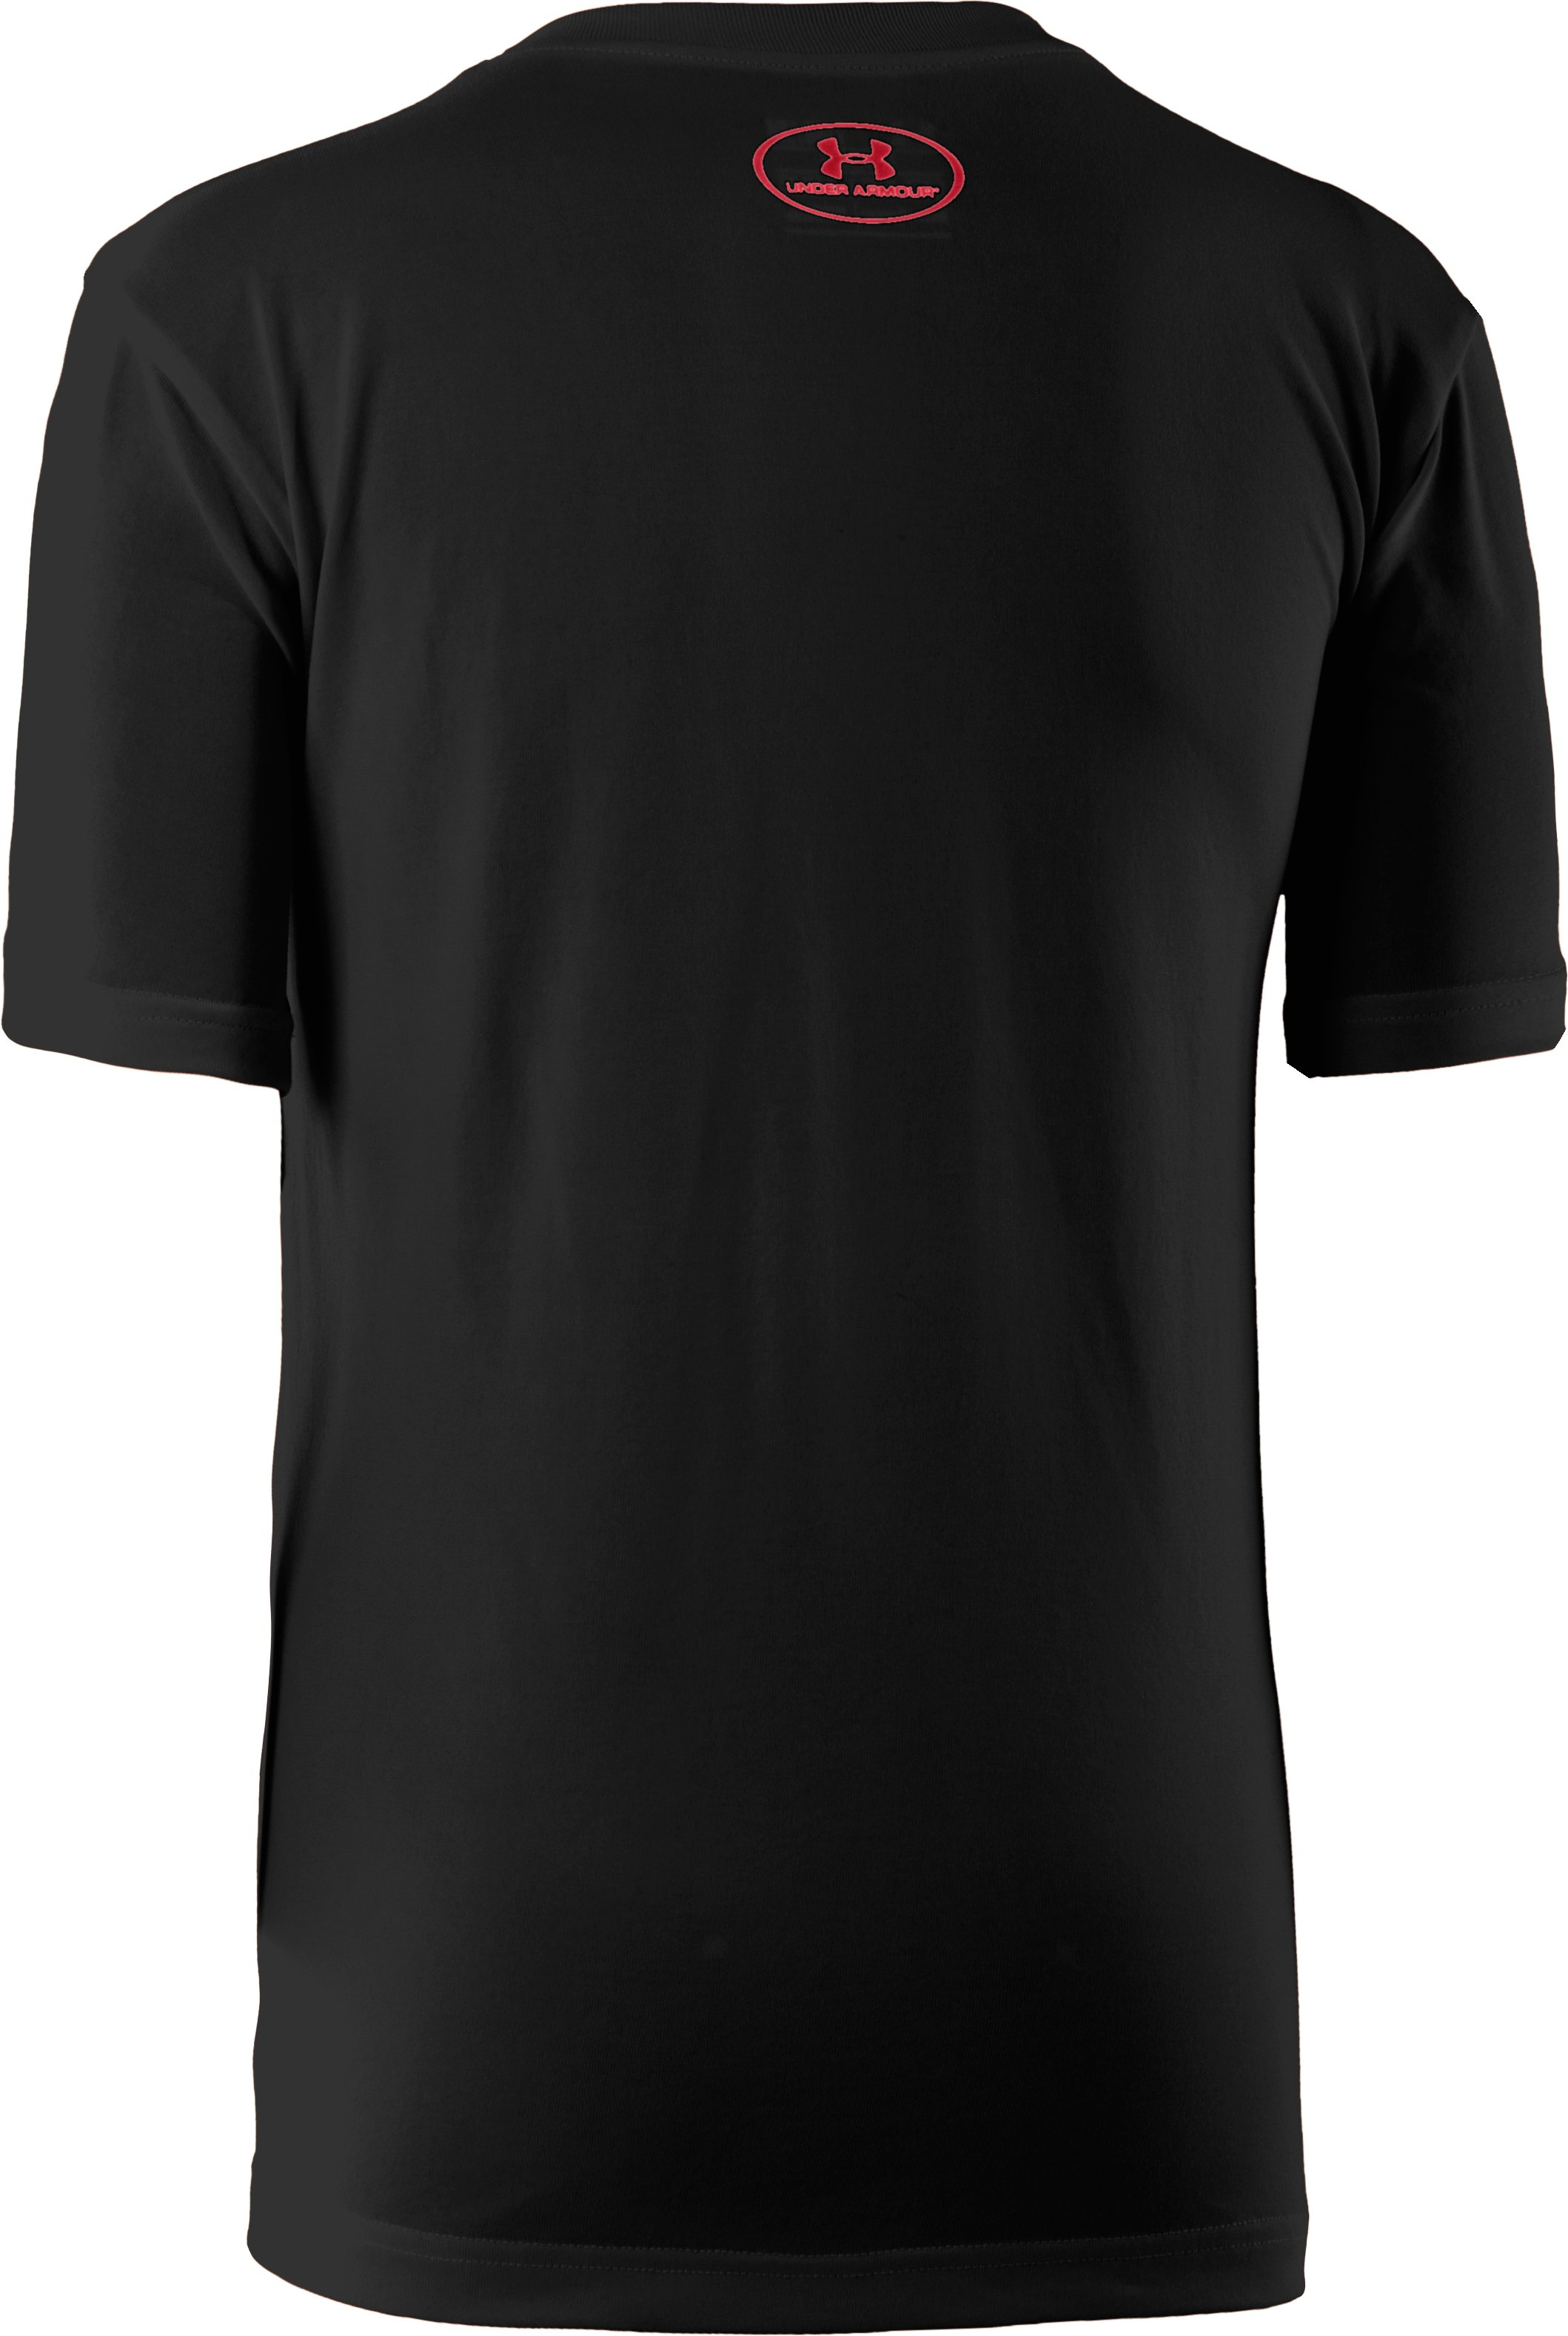 Boys' UA Space Brand Stack T-Shirt, Black